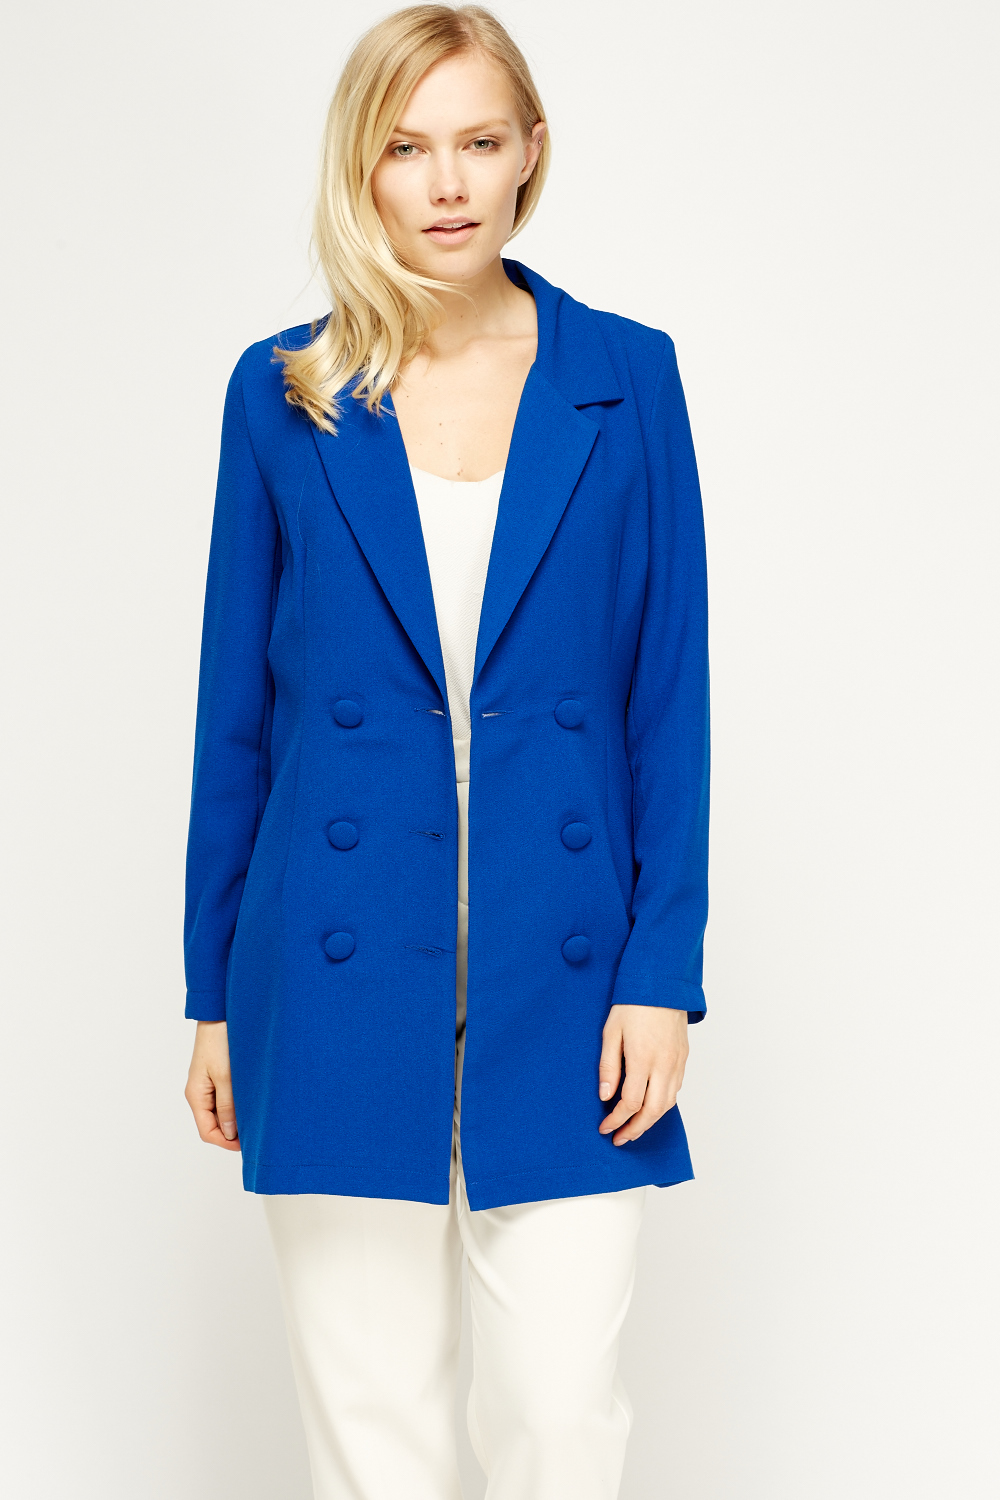 Find great deals on eBay for Longline Blazer in Women's Suits, Blazers and Accessories. Shop with confidence.